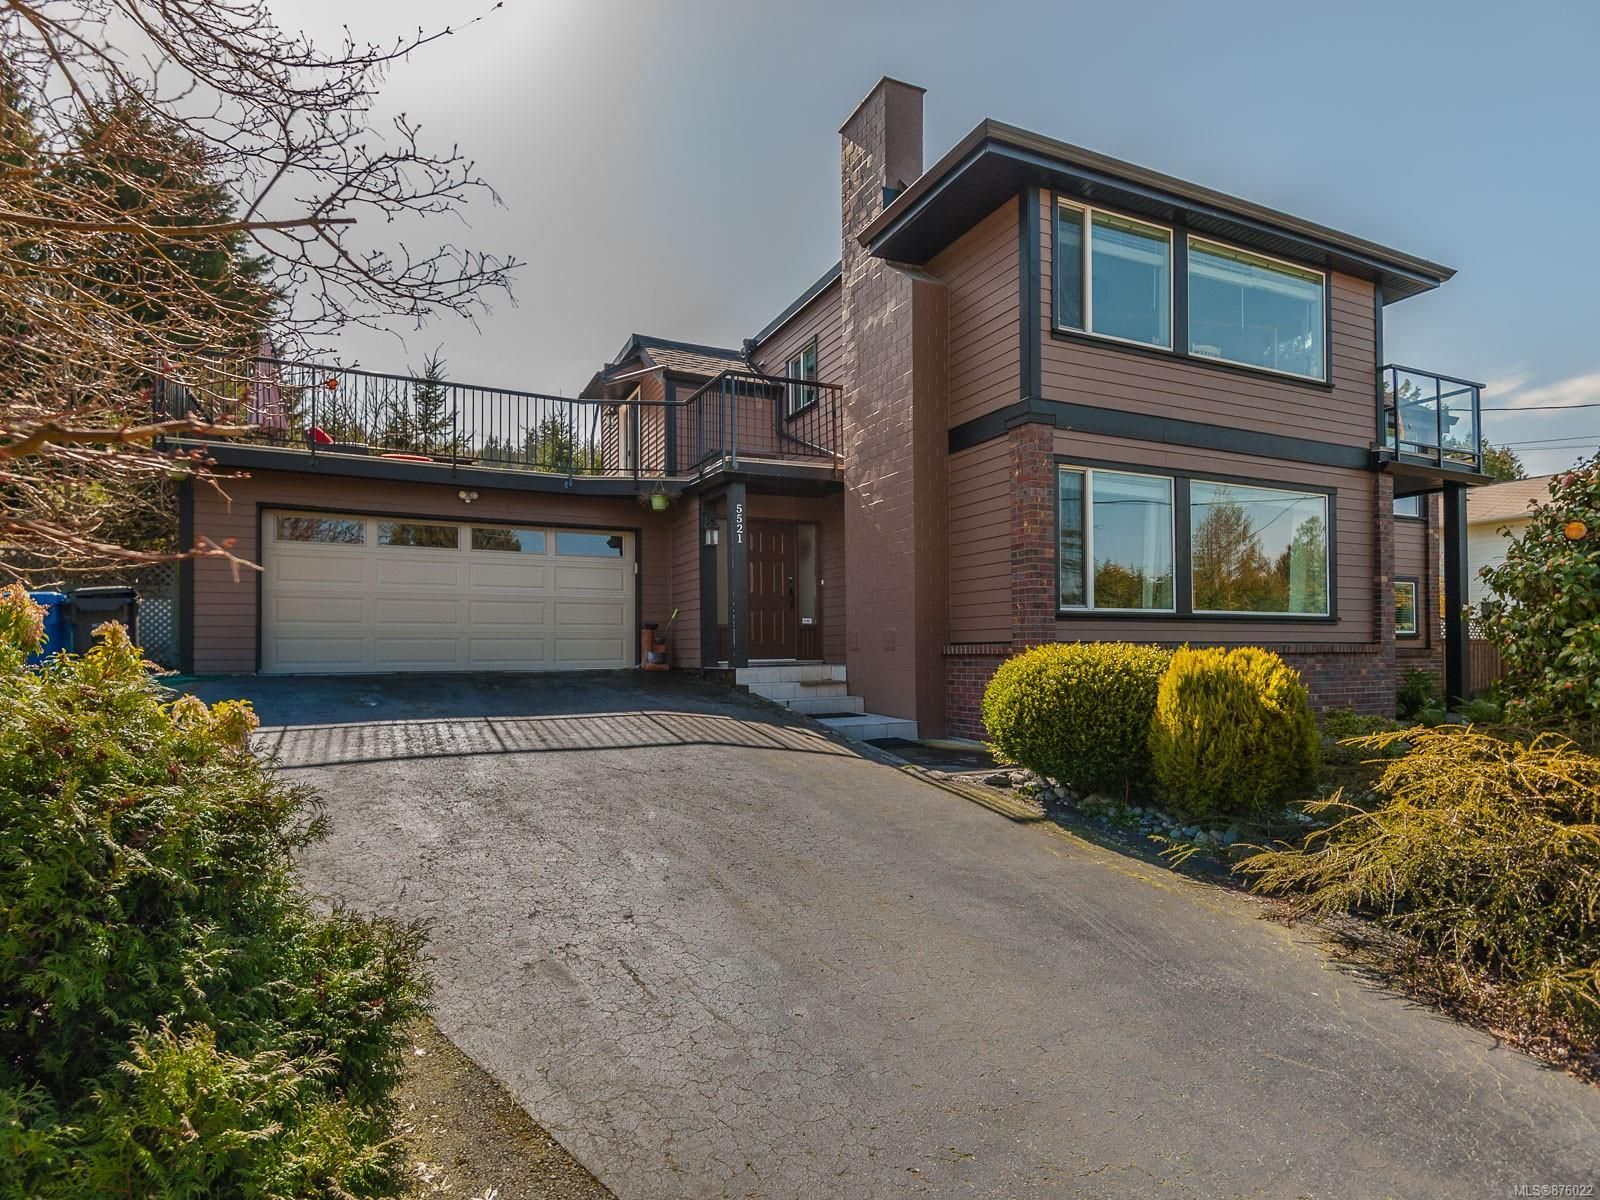 Main Photo: 5521 Westdale Rd in : Na North Nanaimo House for sale (Nanaimo)  : MLS®# 876022